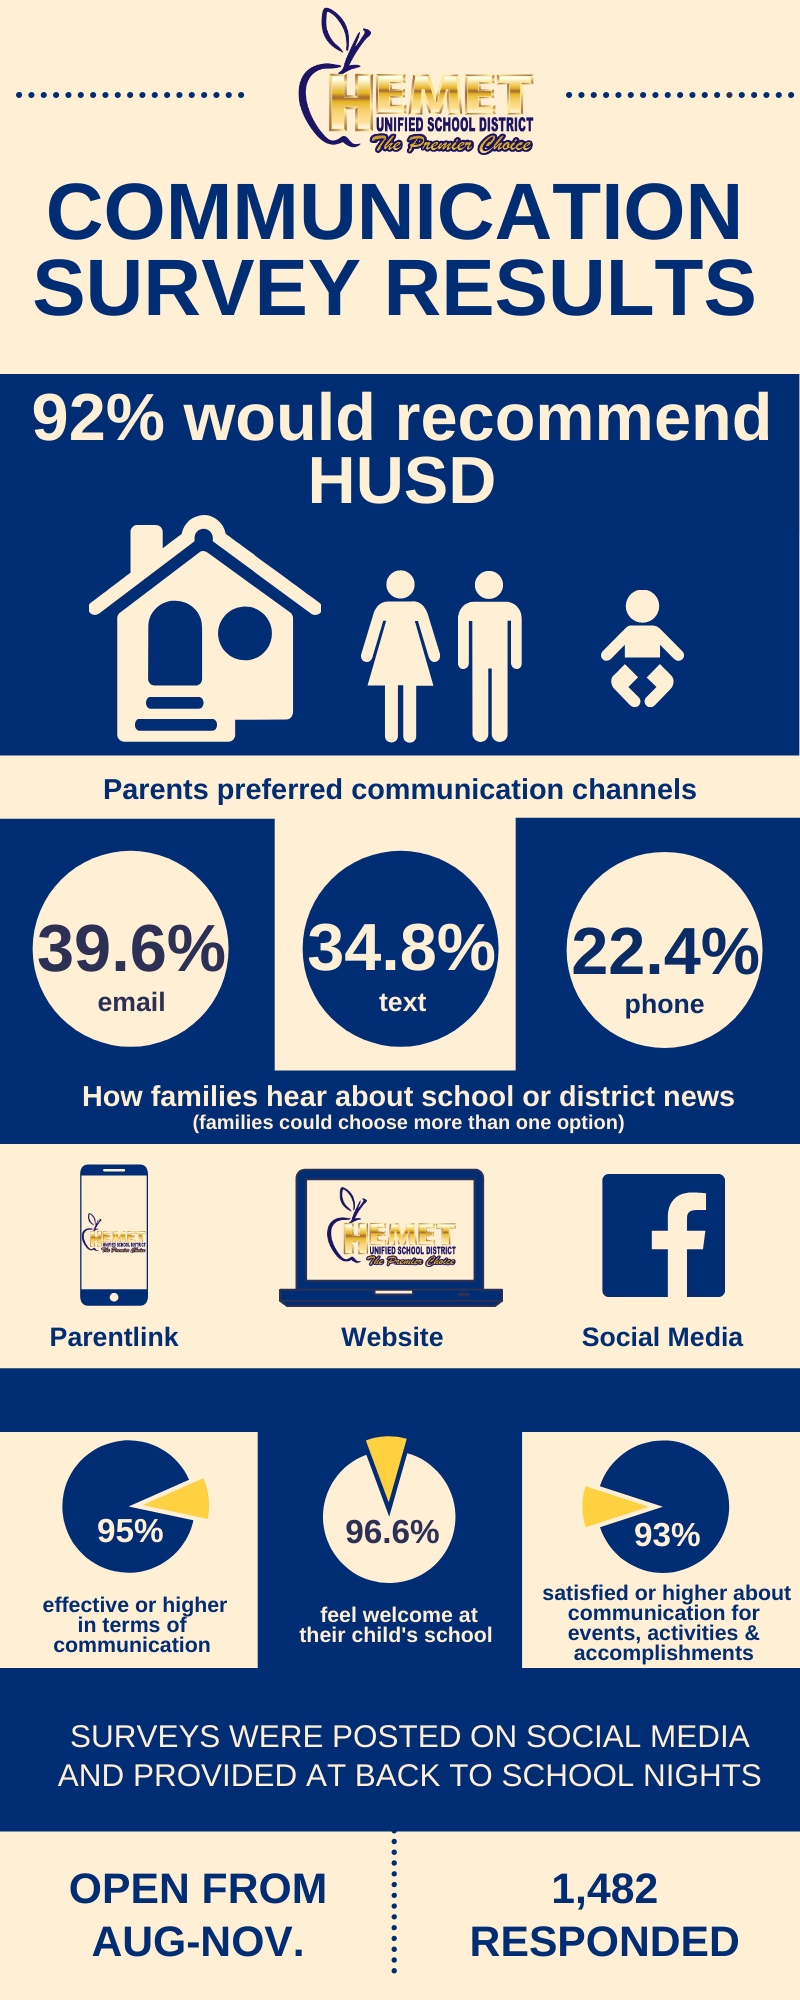 Communication Survey Results Infographic